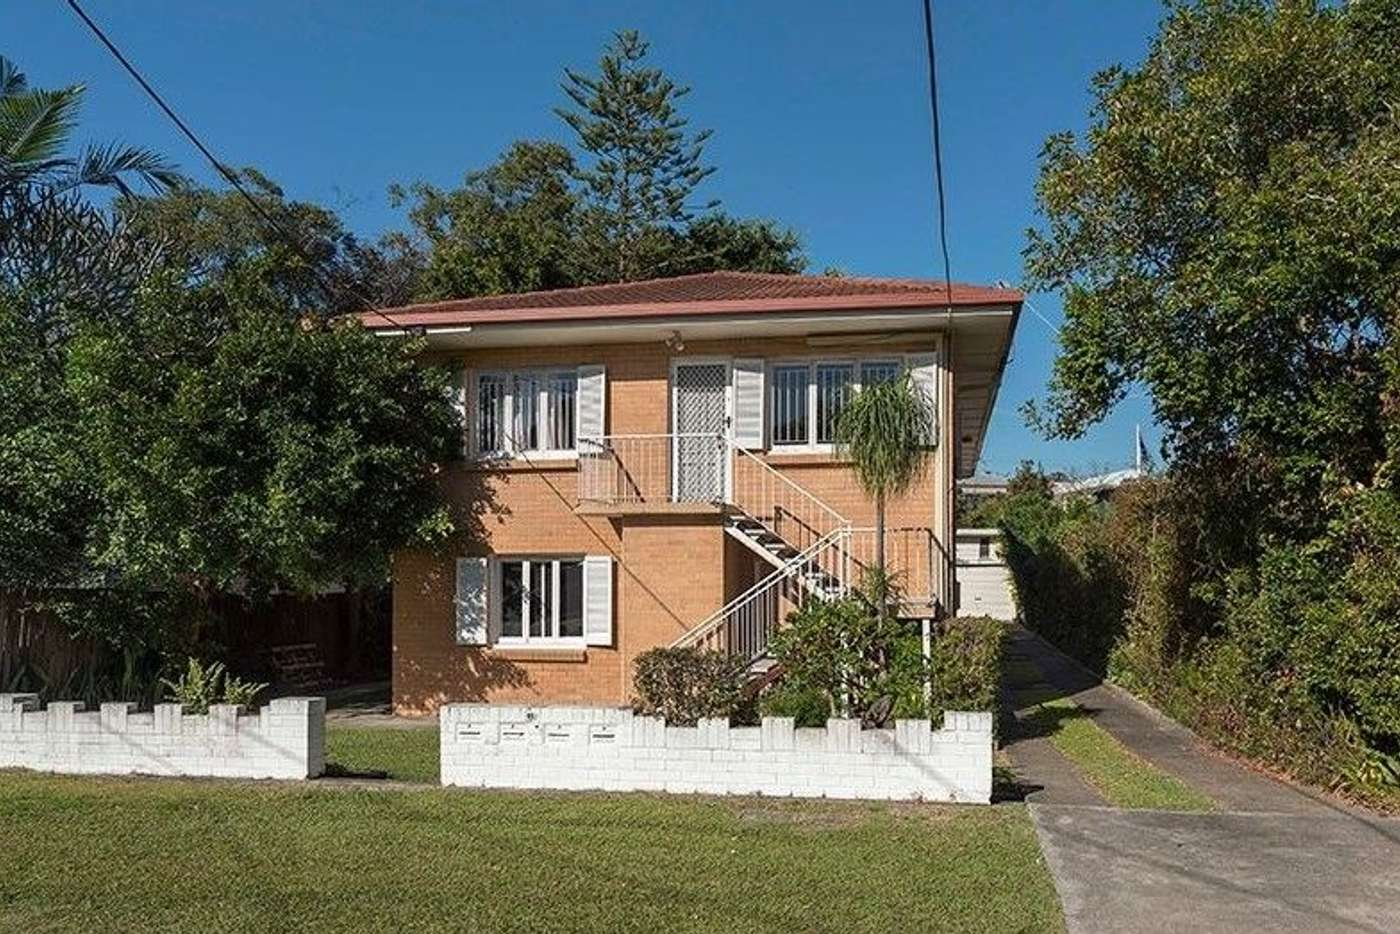 Main view of Homely house listing, 1/93 York, Coorparoo QLD 4151